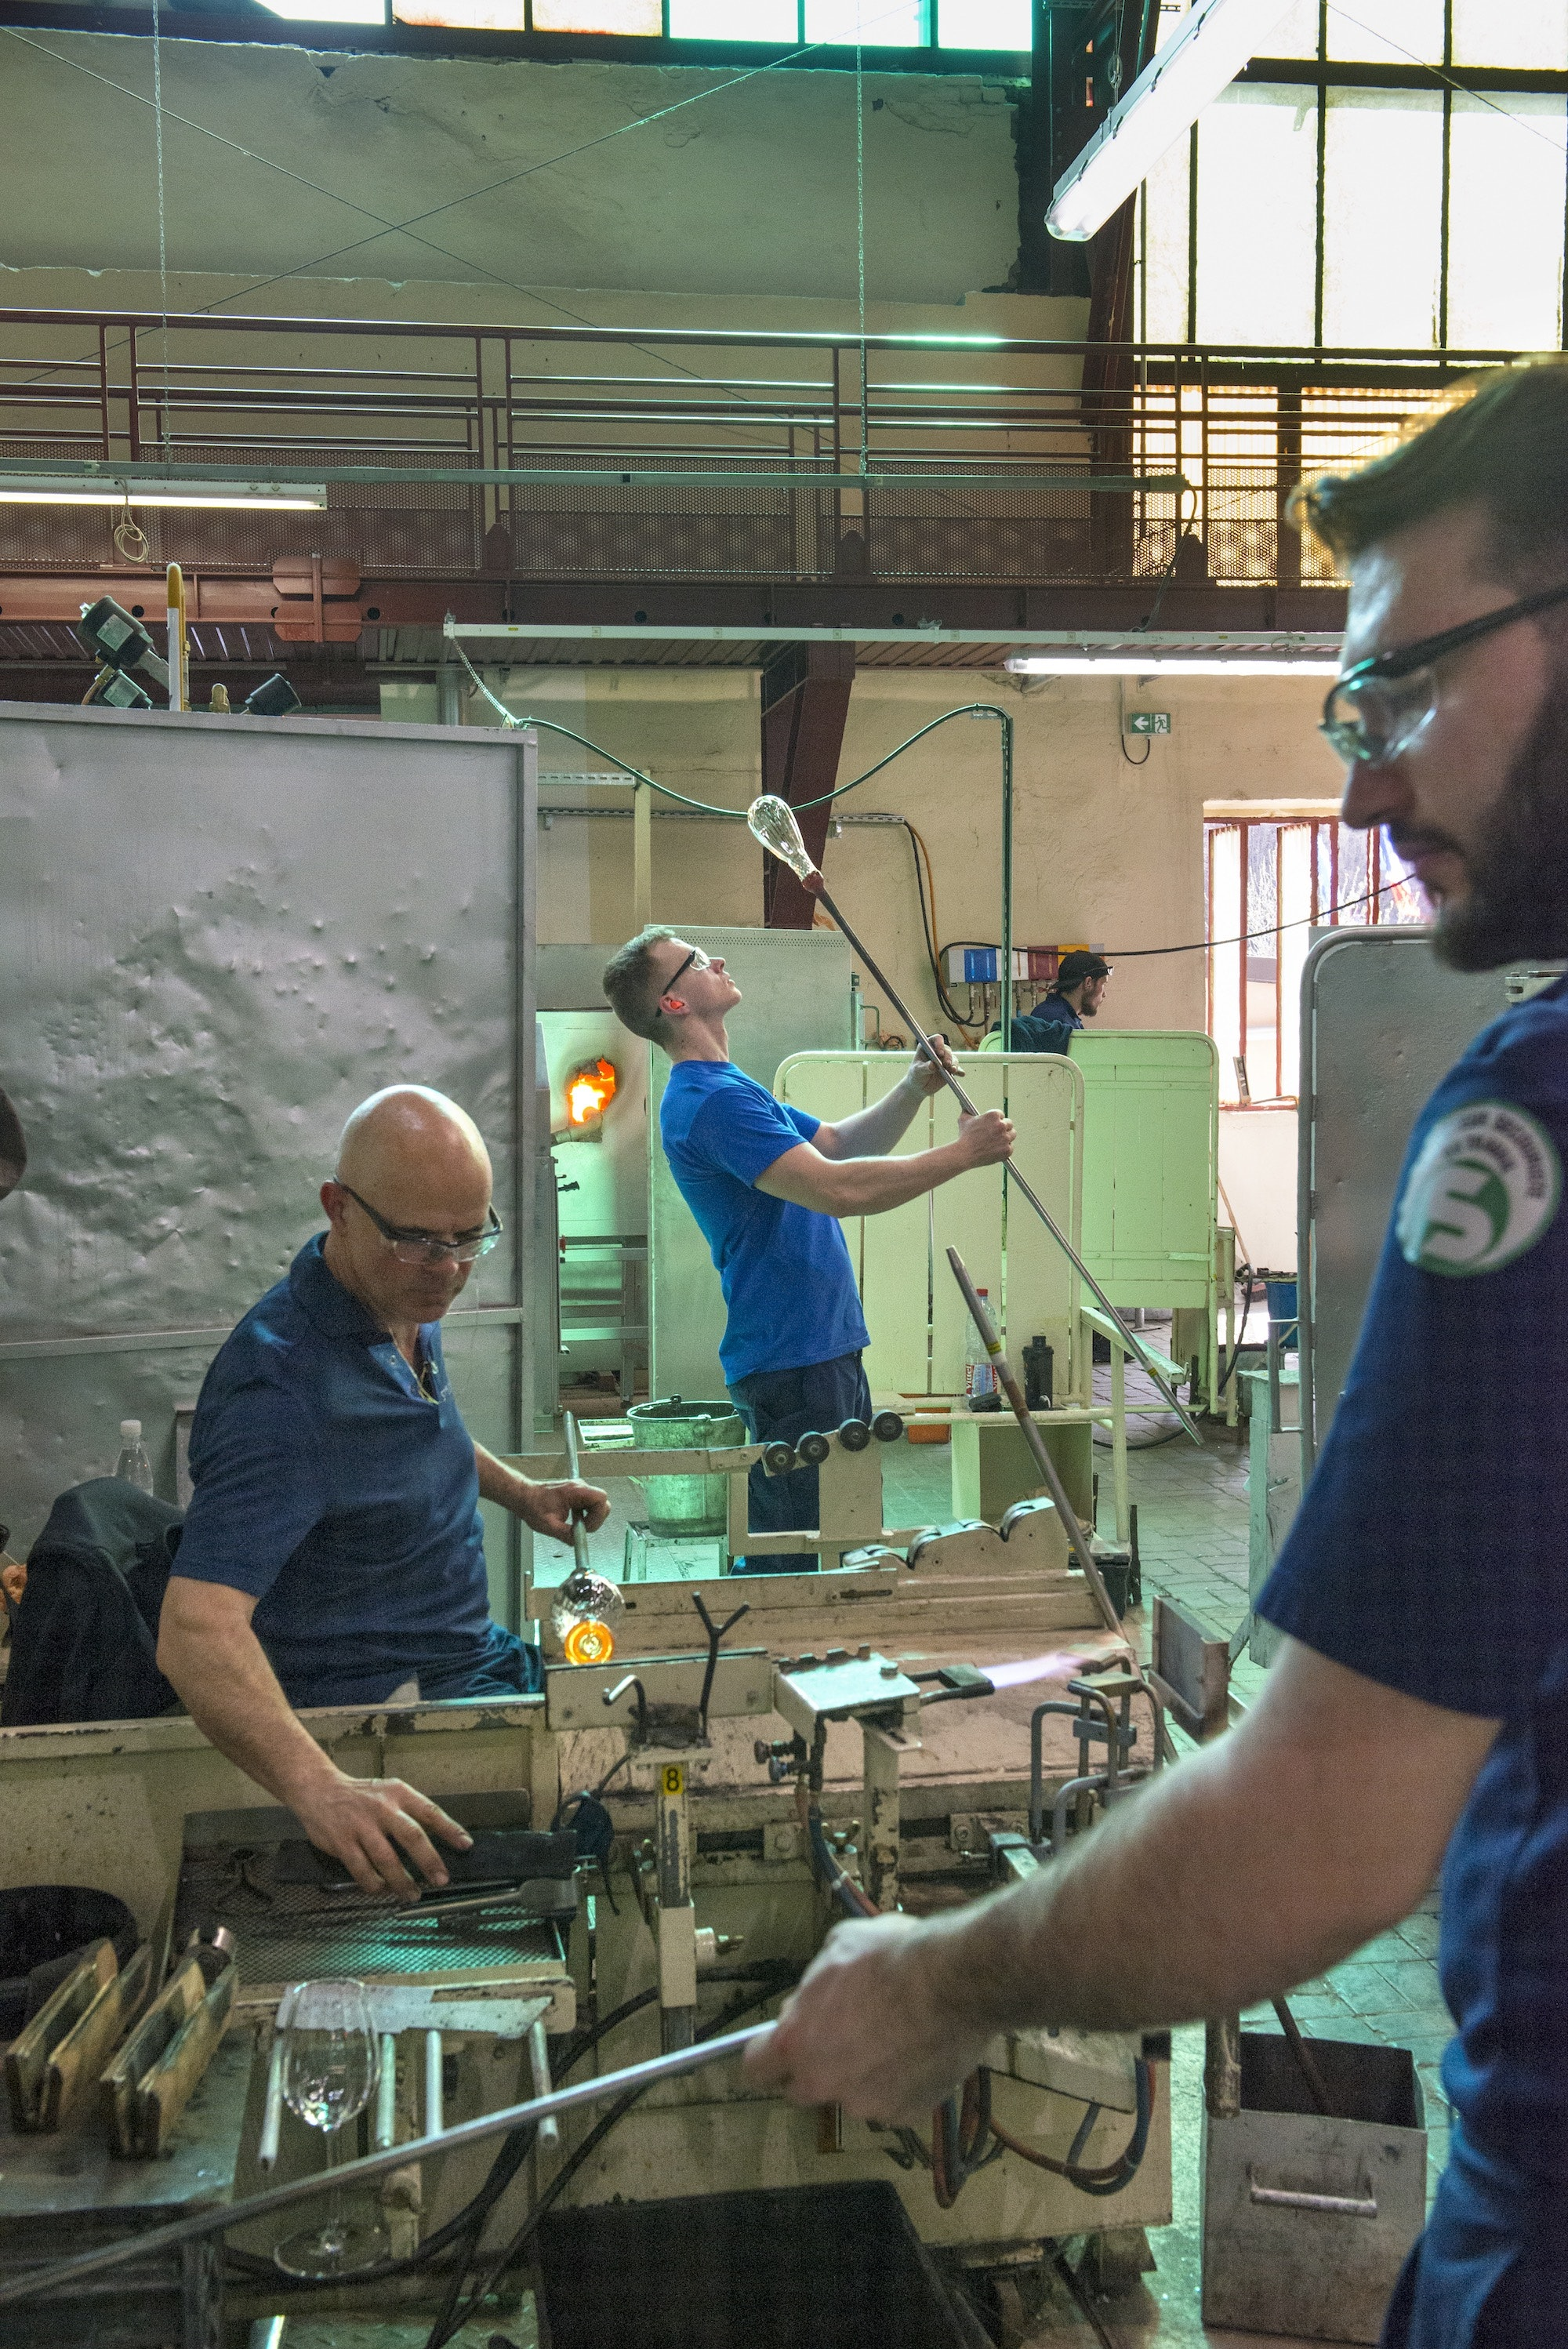 Glassblowers in the hot workshop.